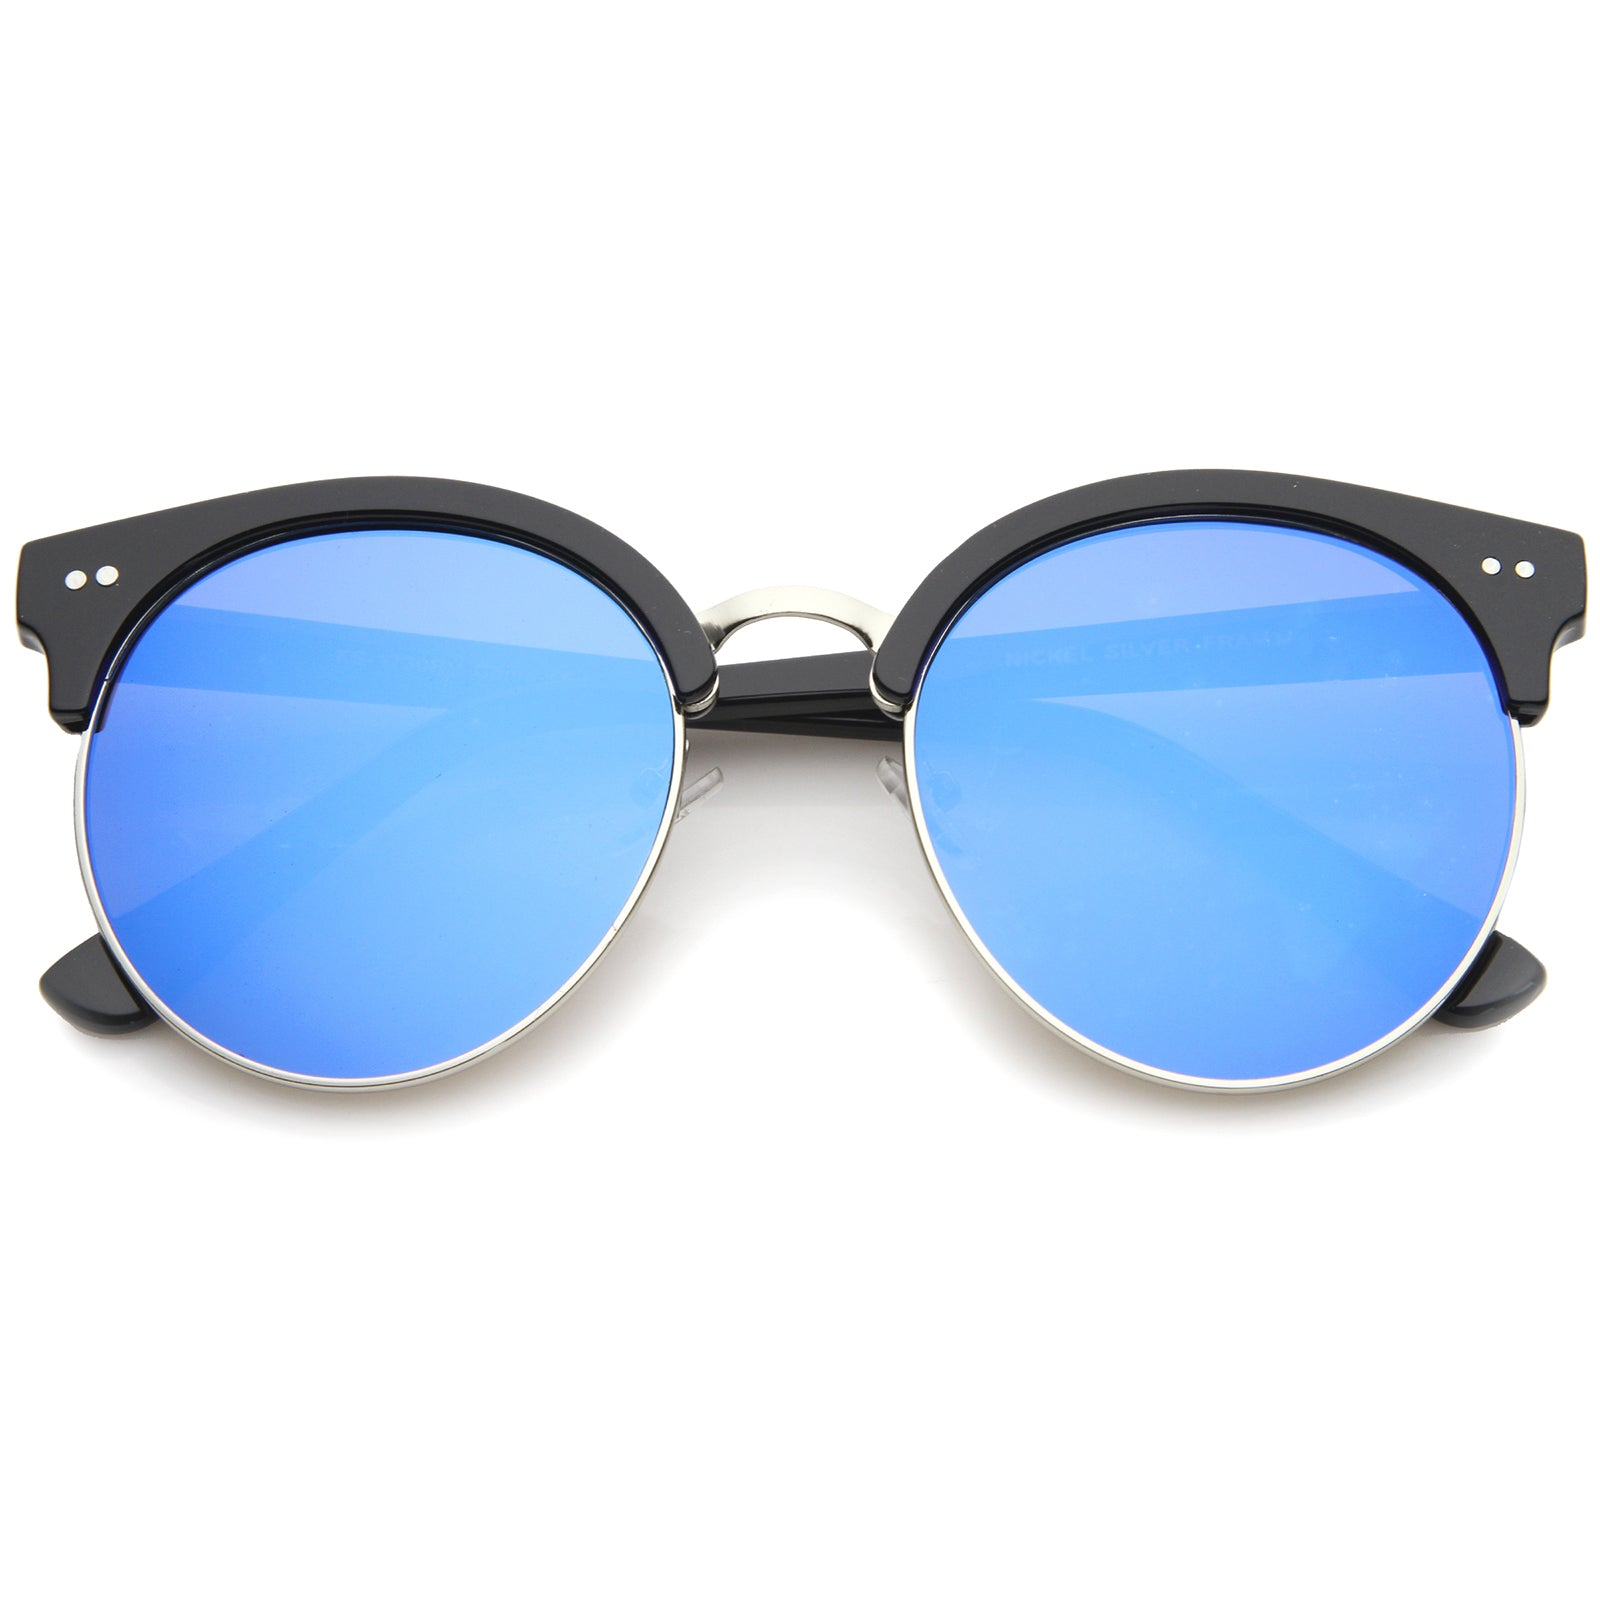 Womens Oversized Sunglasses With UV400 Protected Mirrored Lens - sunglass.la - 9